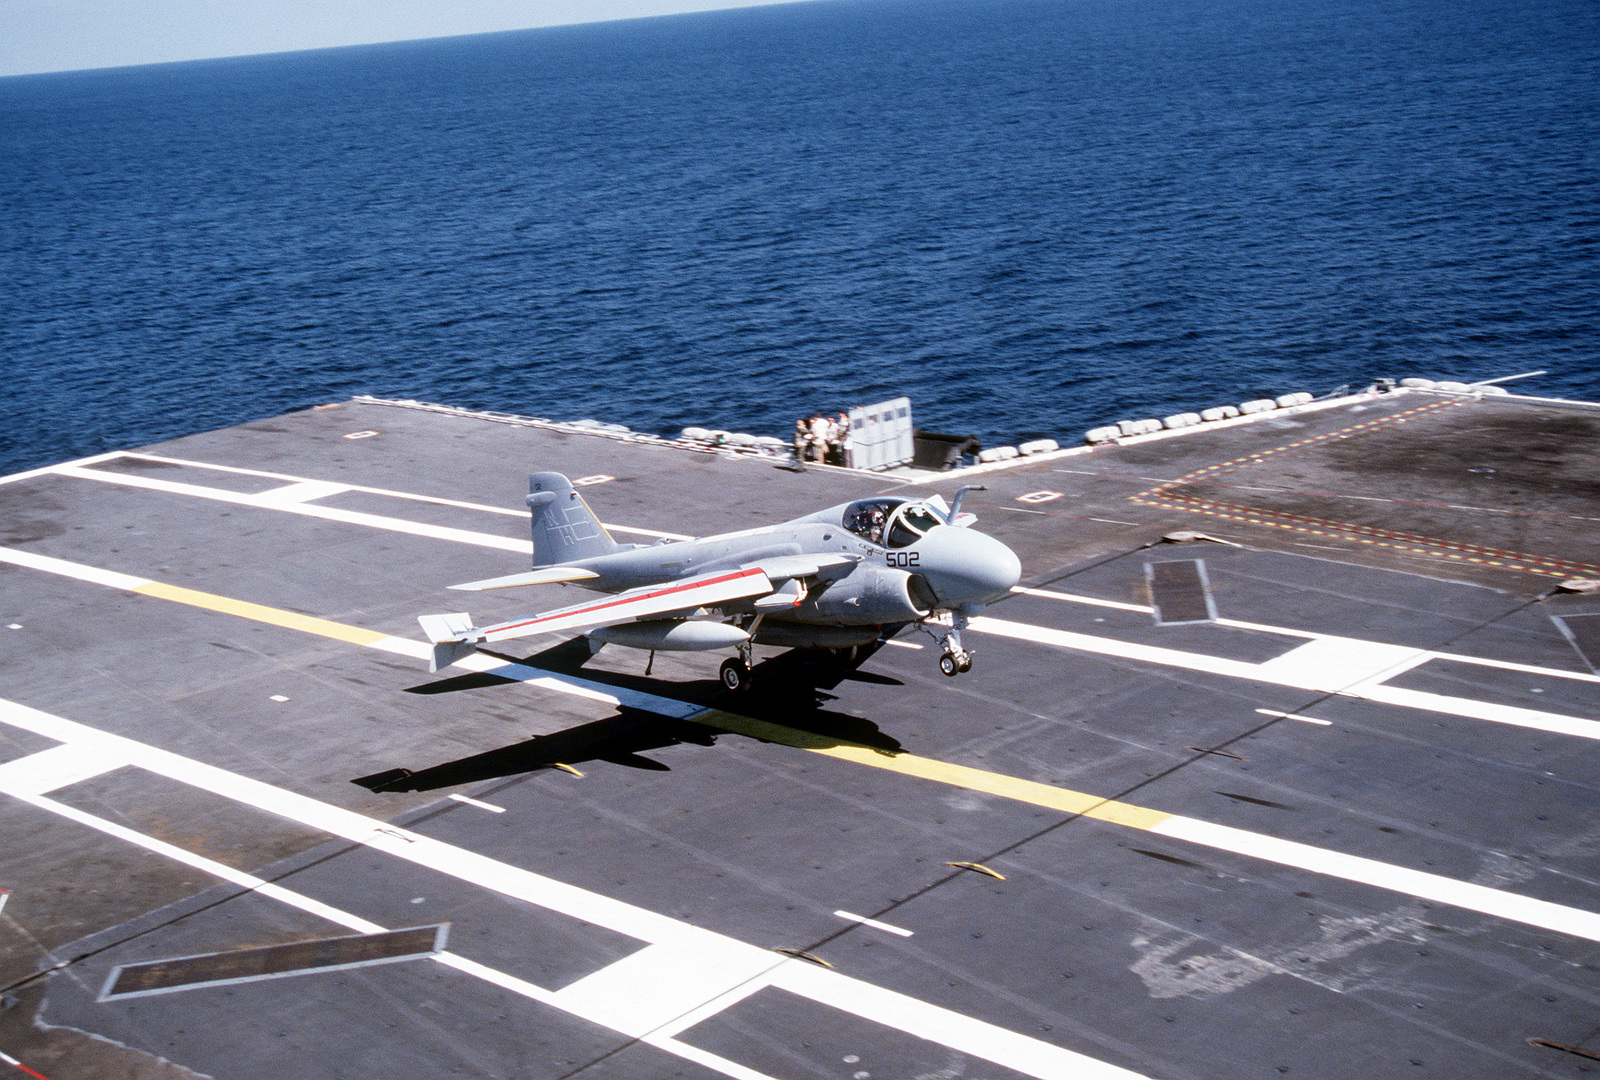 An Attack Squadron 95 (VA-95) A-6E Intruder aircraft comes in for a lands on the flight deck of the nuclear-powered aircraft carrier USS ABRAHAM LINCOLN (CVN-72)